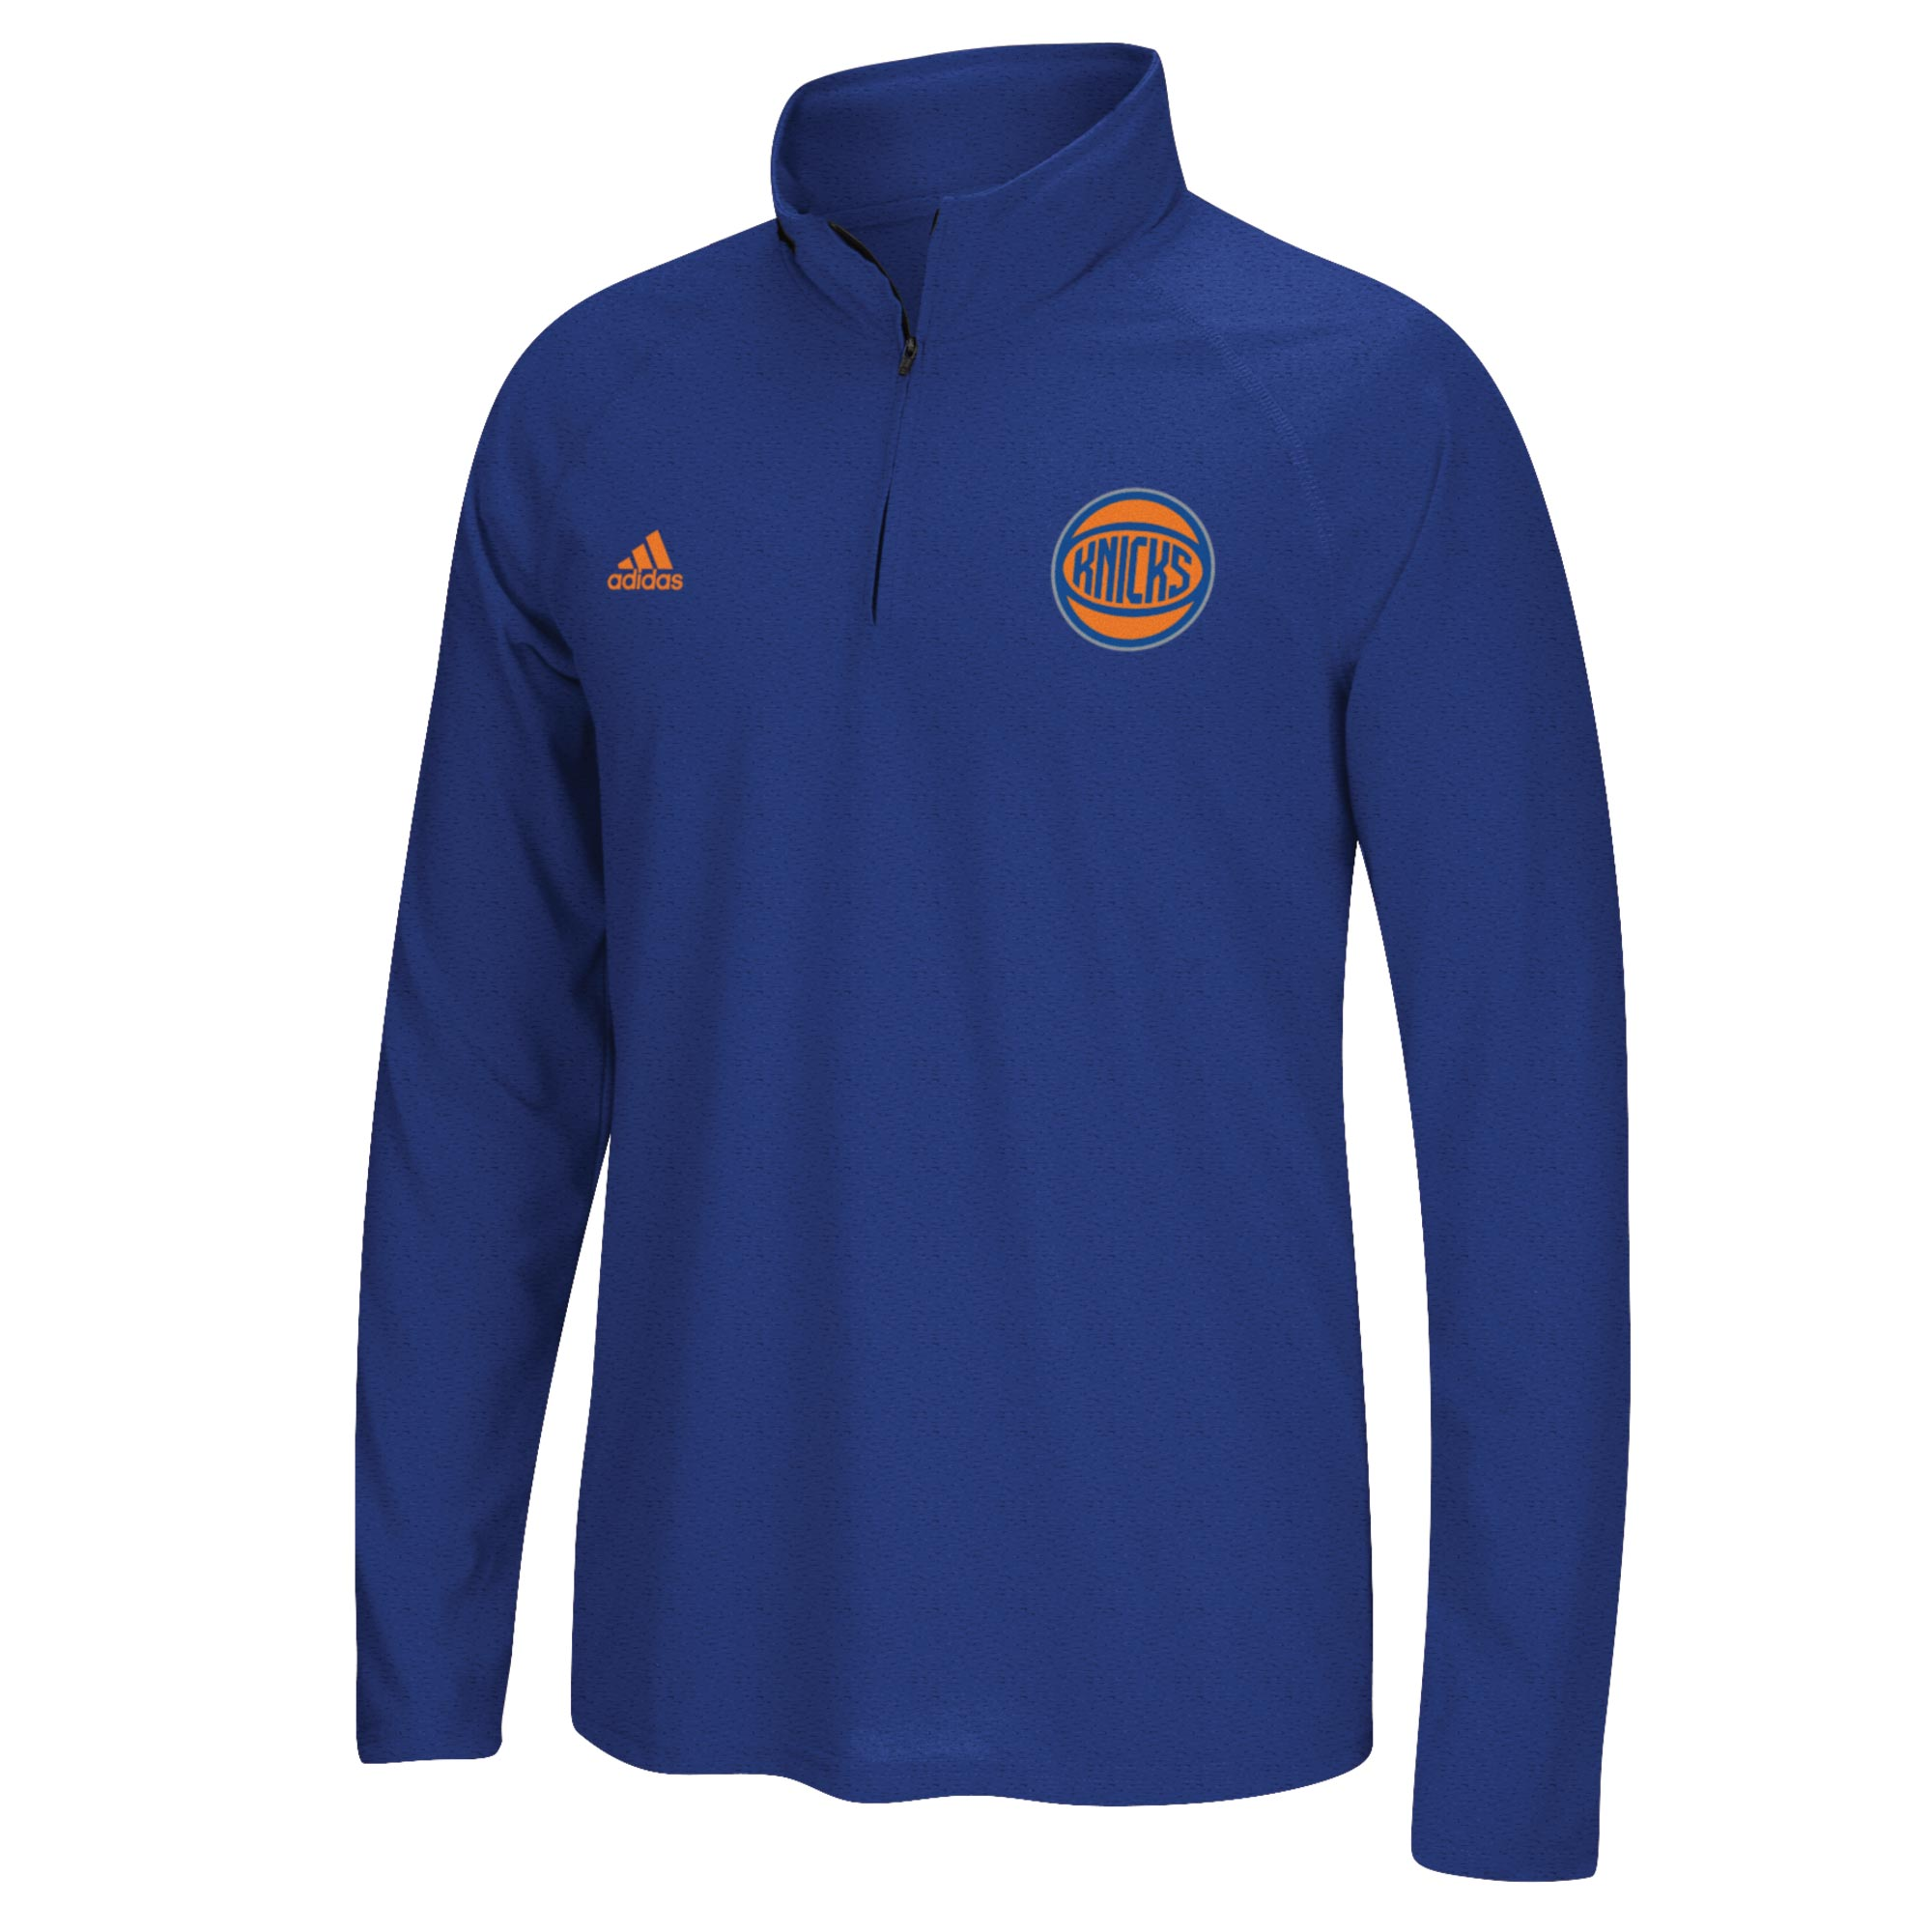 New York Knicks adidas Climalite 1/4 Zip Top - Mens